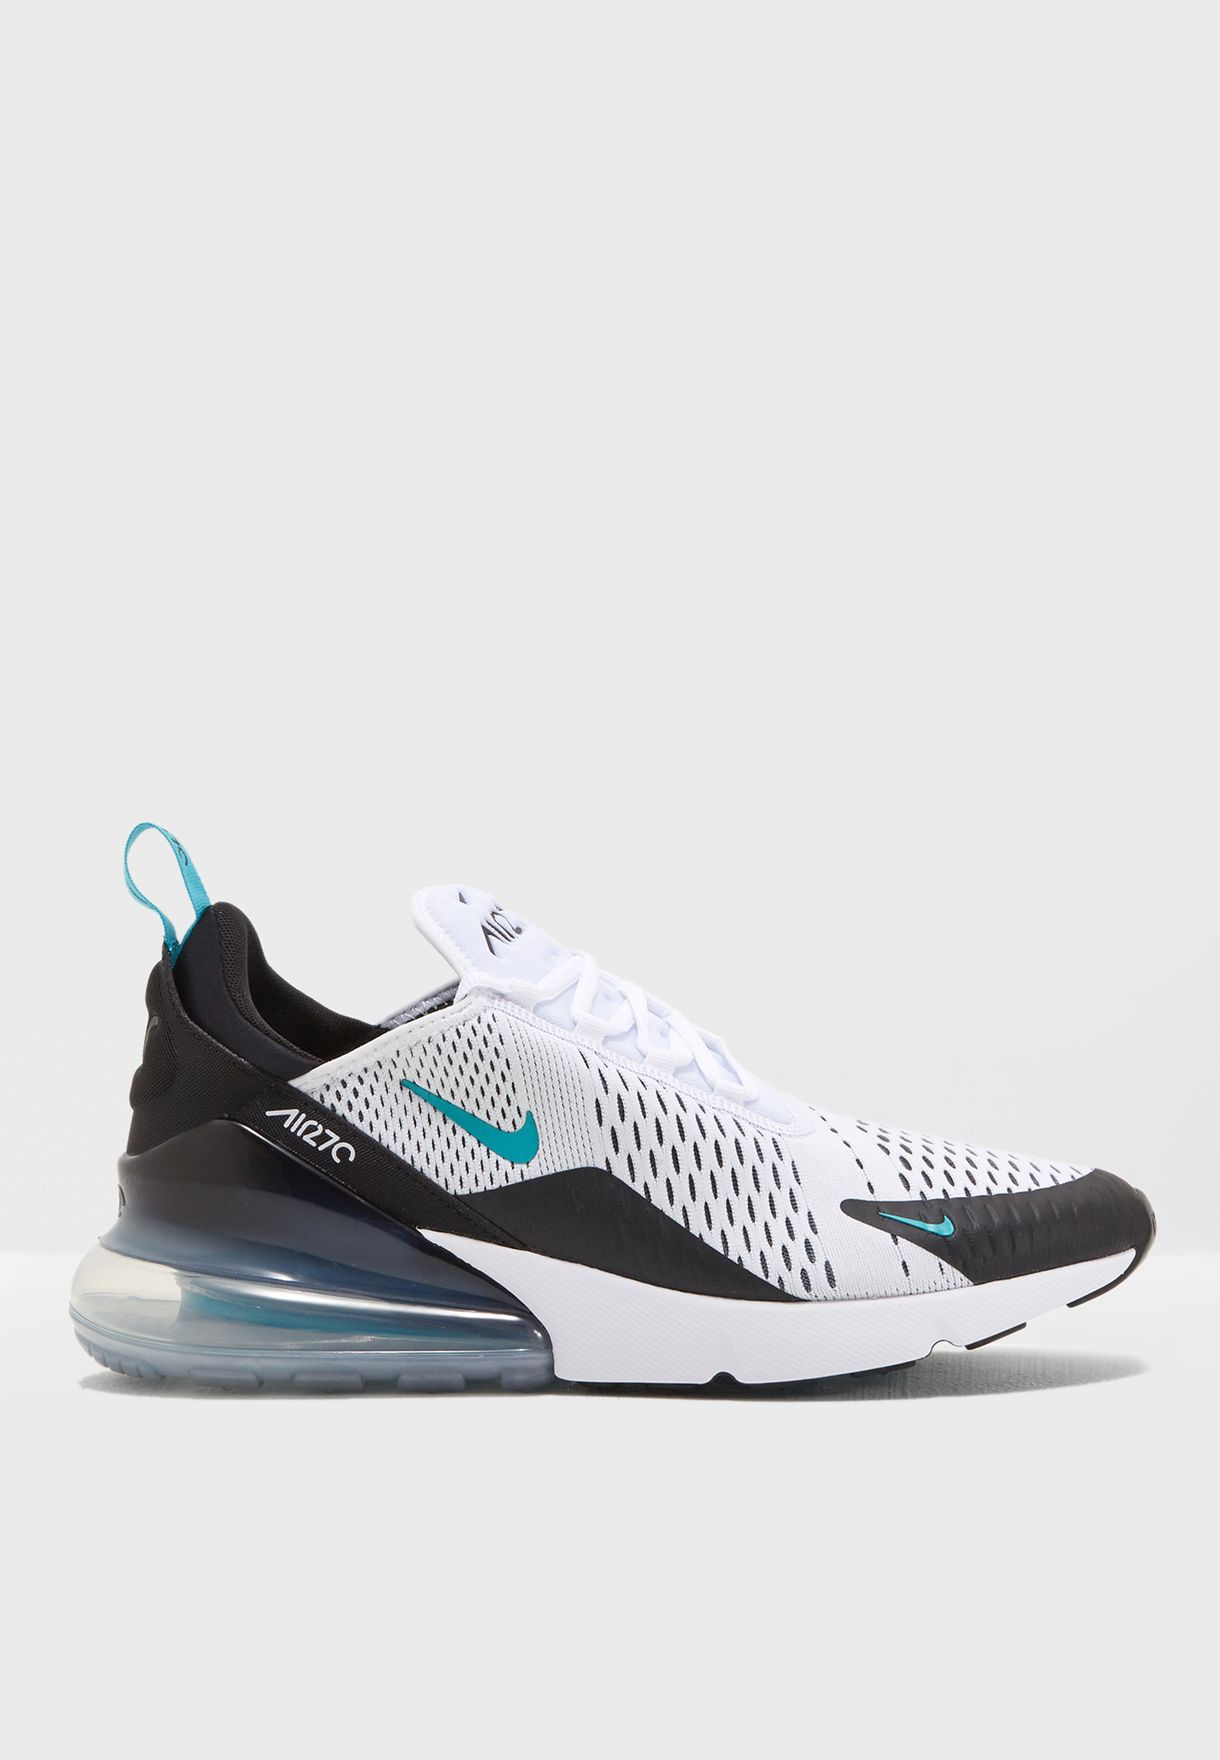 bd368dcda5 Shop Nike multicolor Air Max 270 AH8050-001 for Men in UAE ...